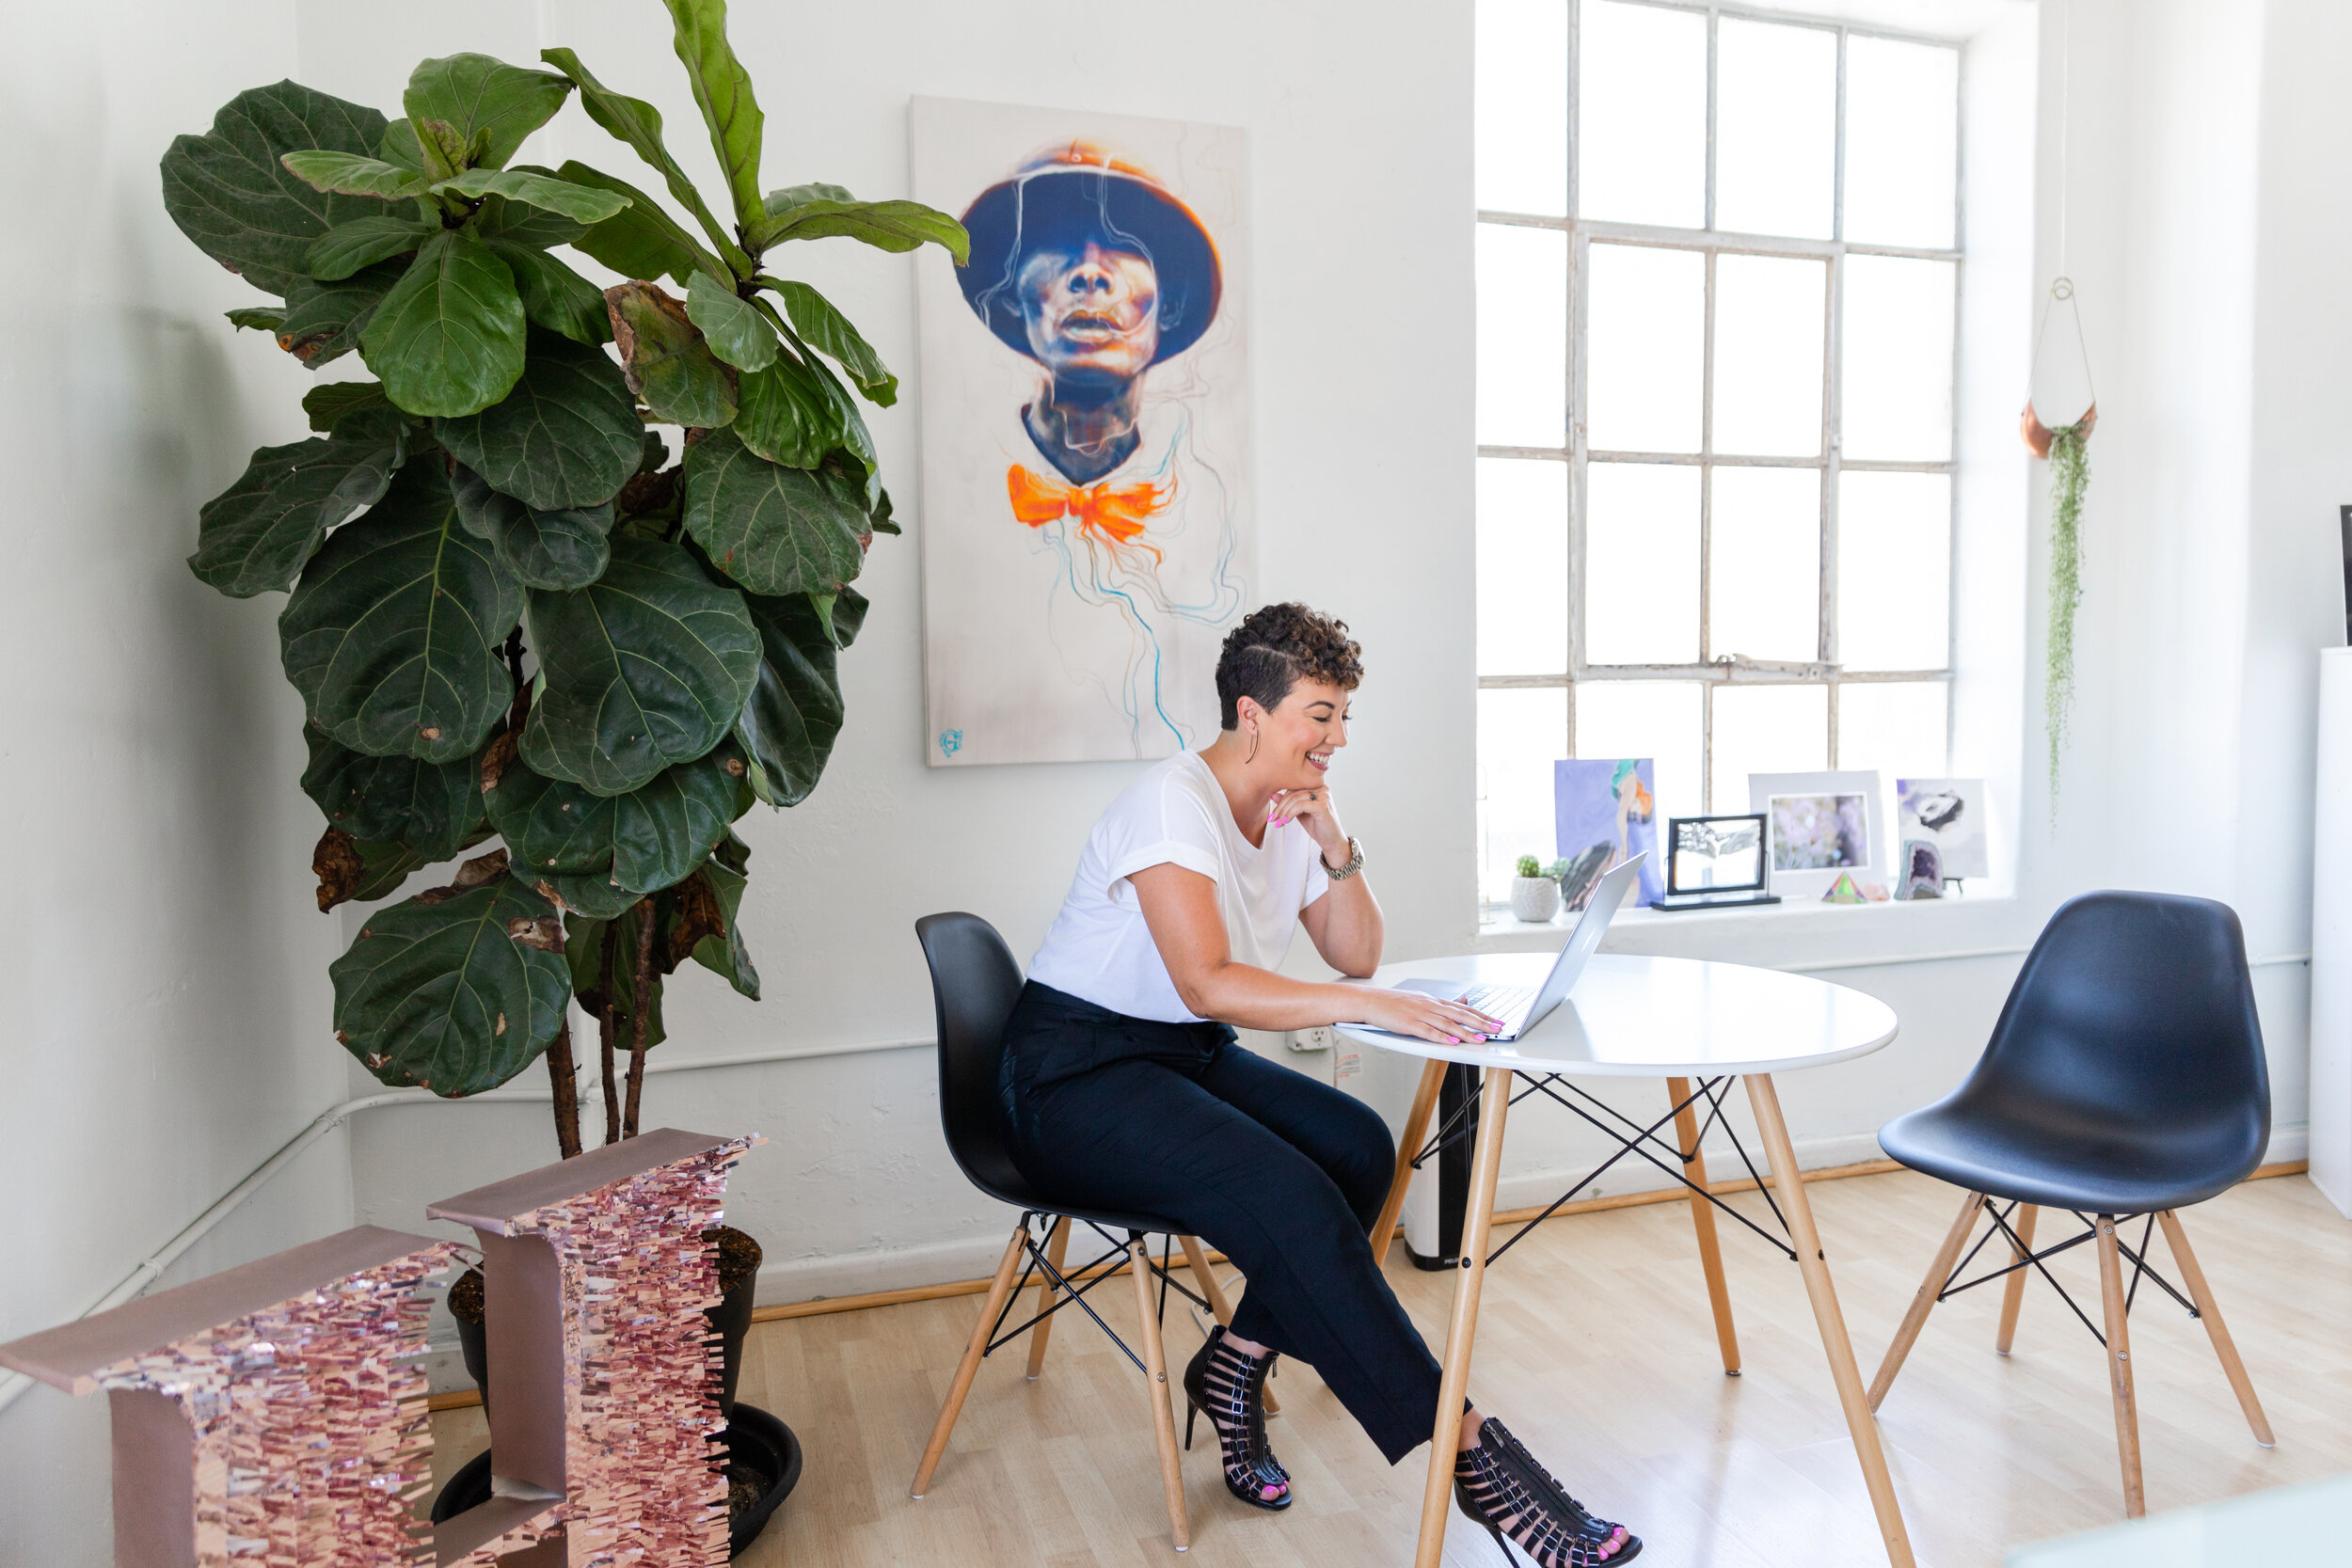 Heidi Luerra, CEO and founder of RAW, has built a global organization of more than 200,000 artists.